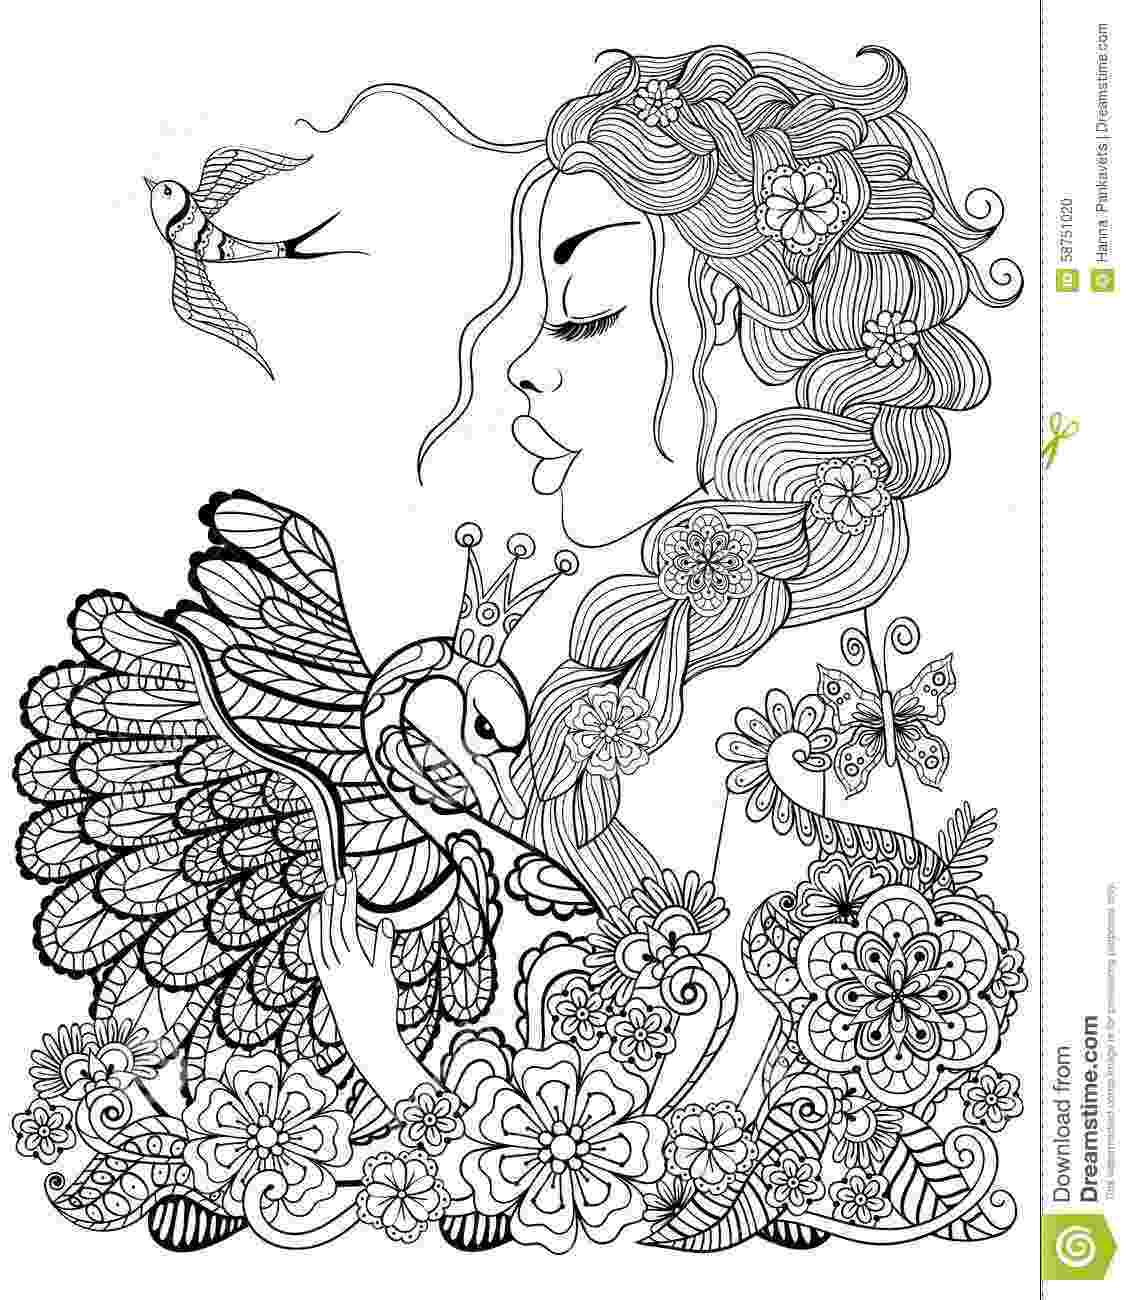 anti stress coloring book review anti stress 247 relaxation printable coloring pages review coloring book anti stress